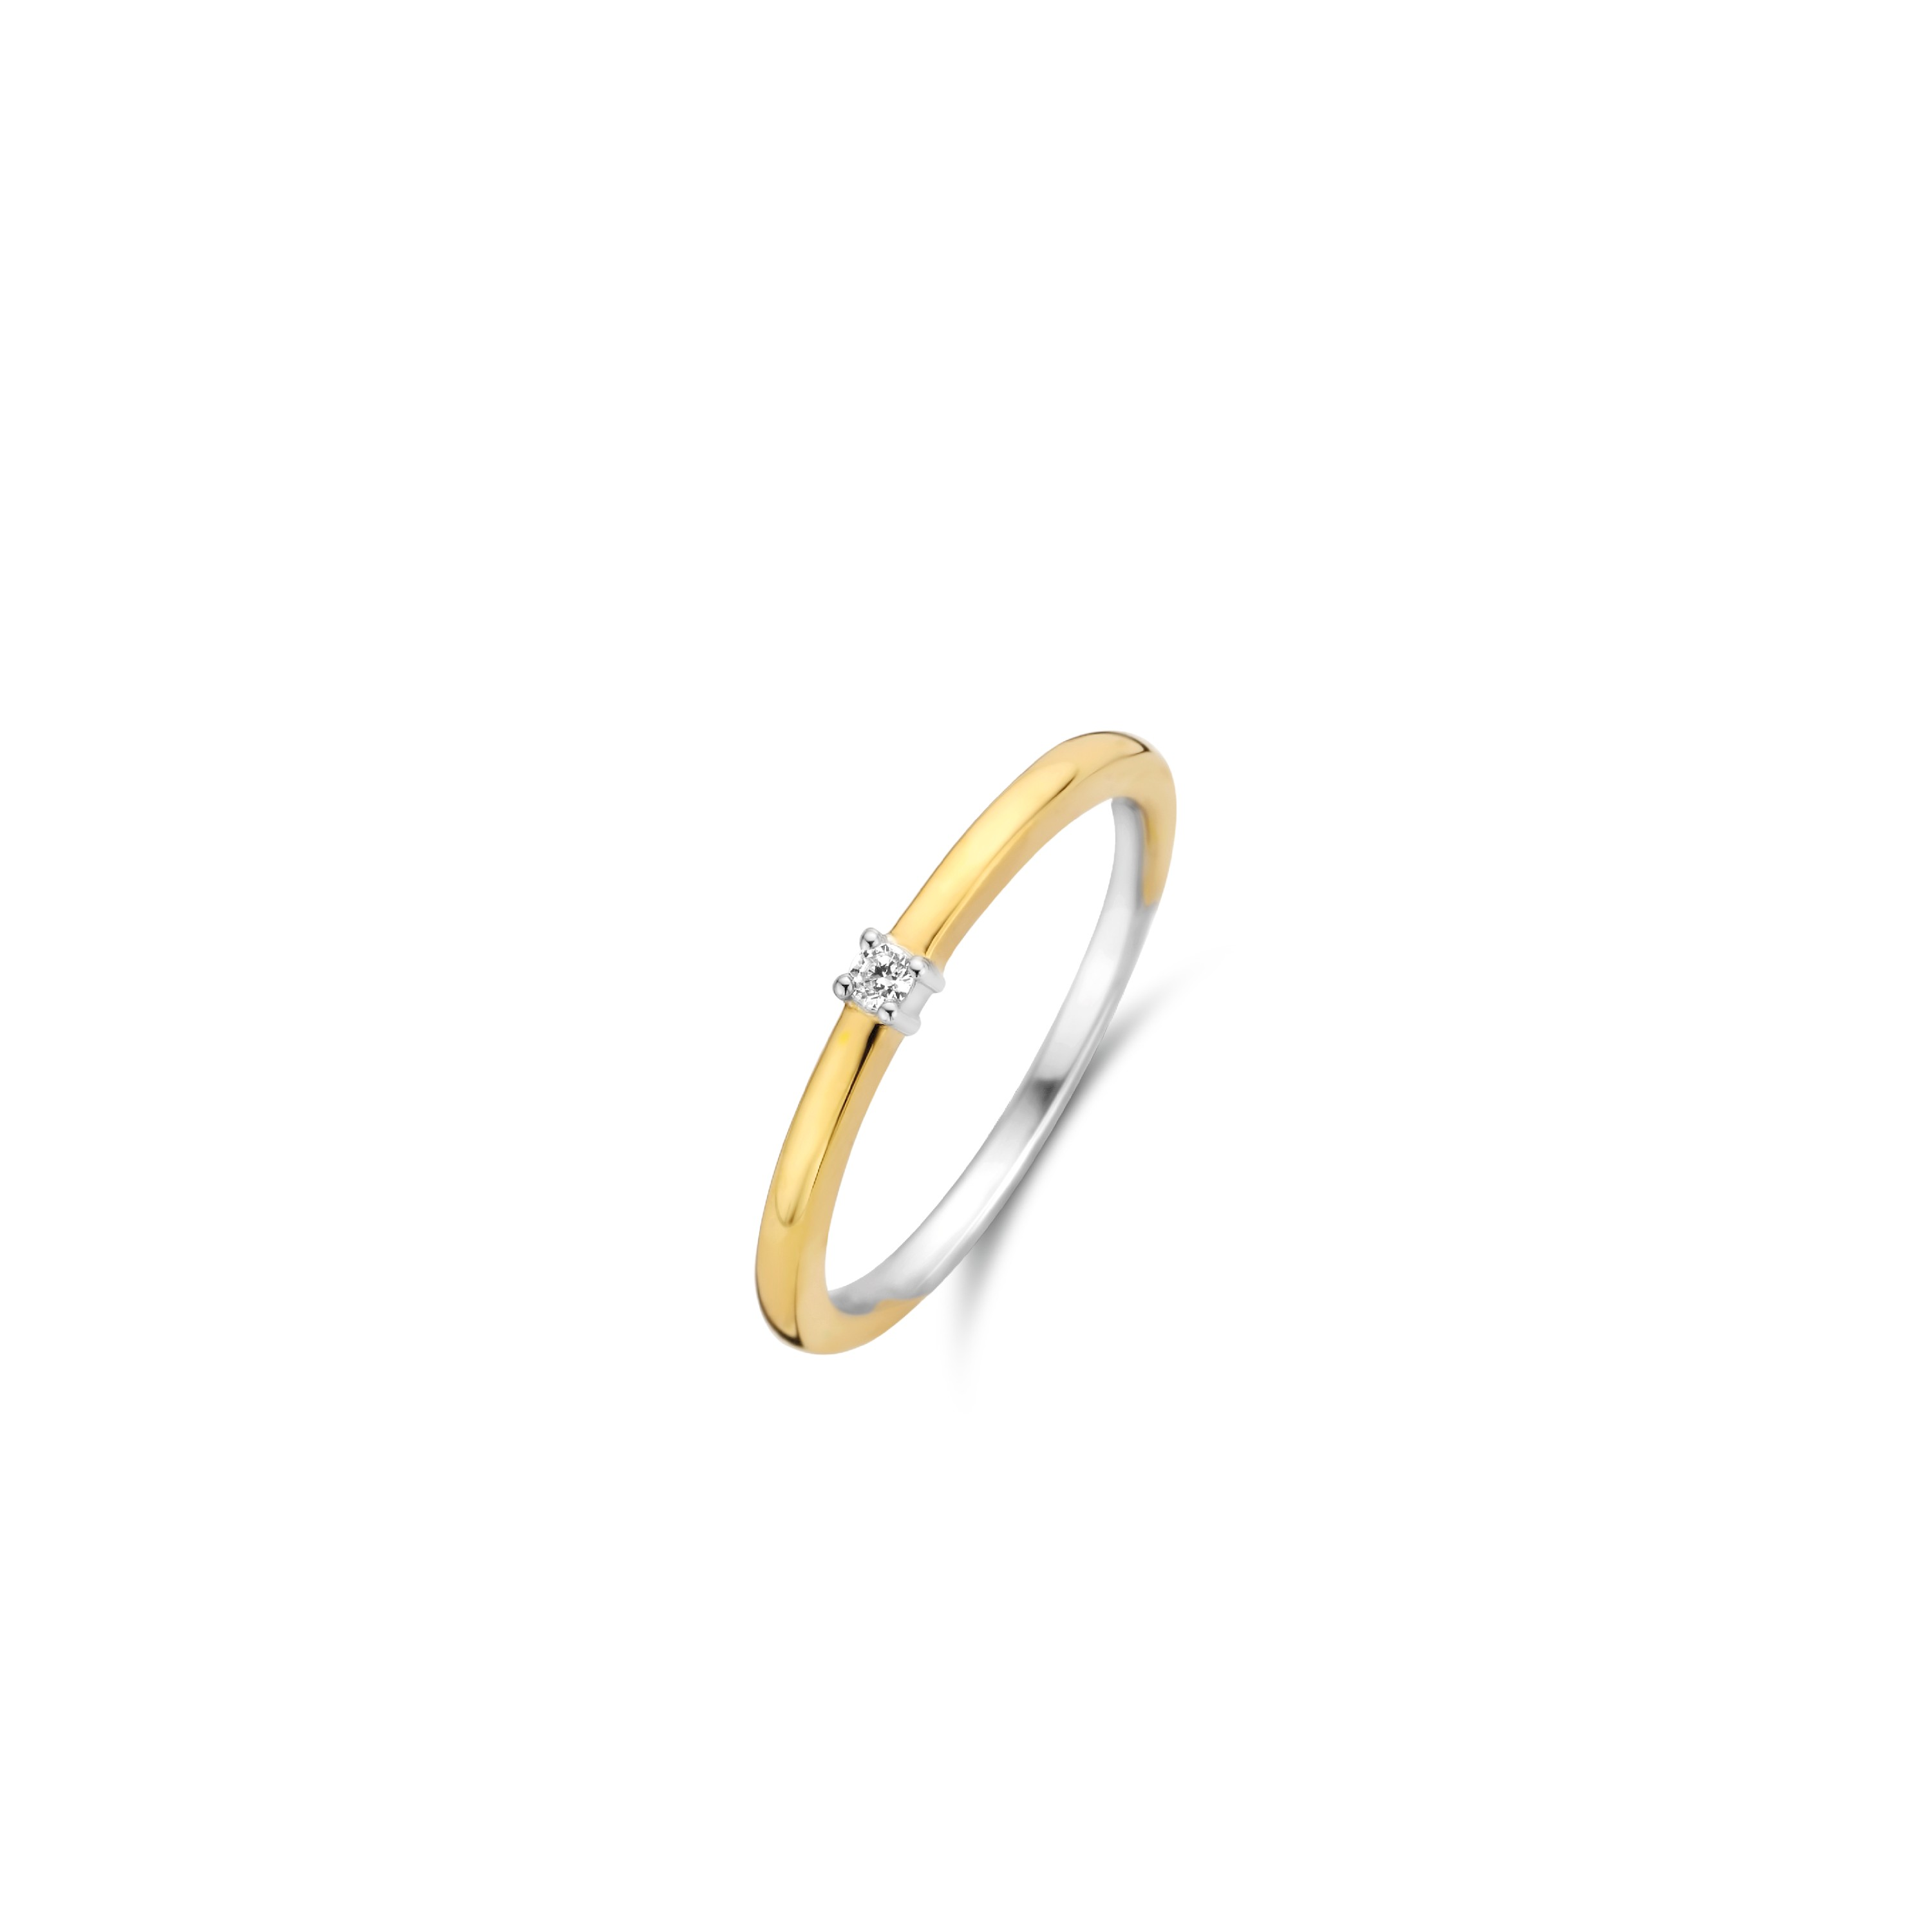 TI SENTO Milano Ring 12210ZY Zilver gold plated Maat 48